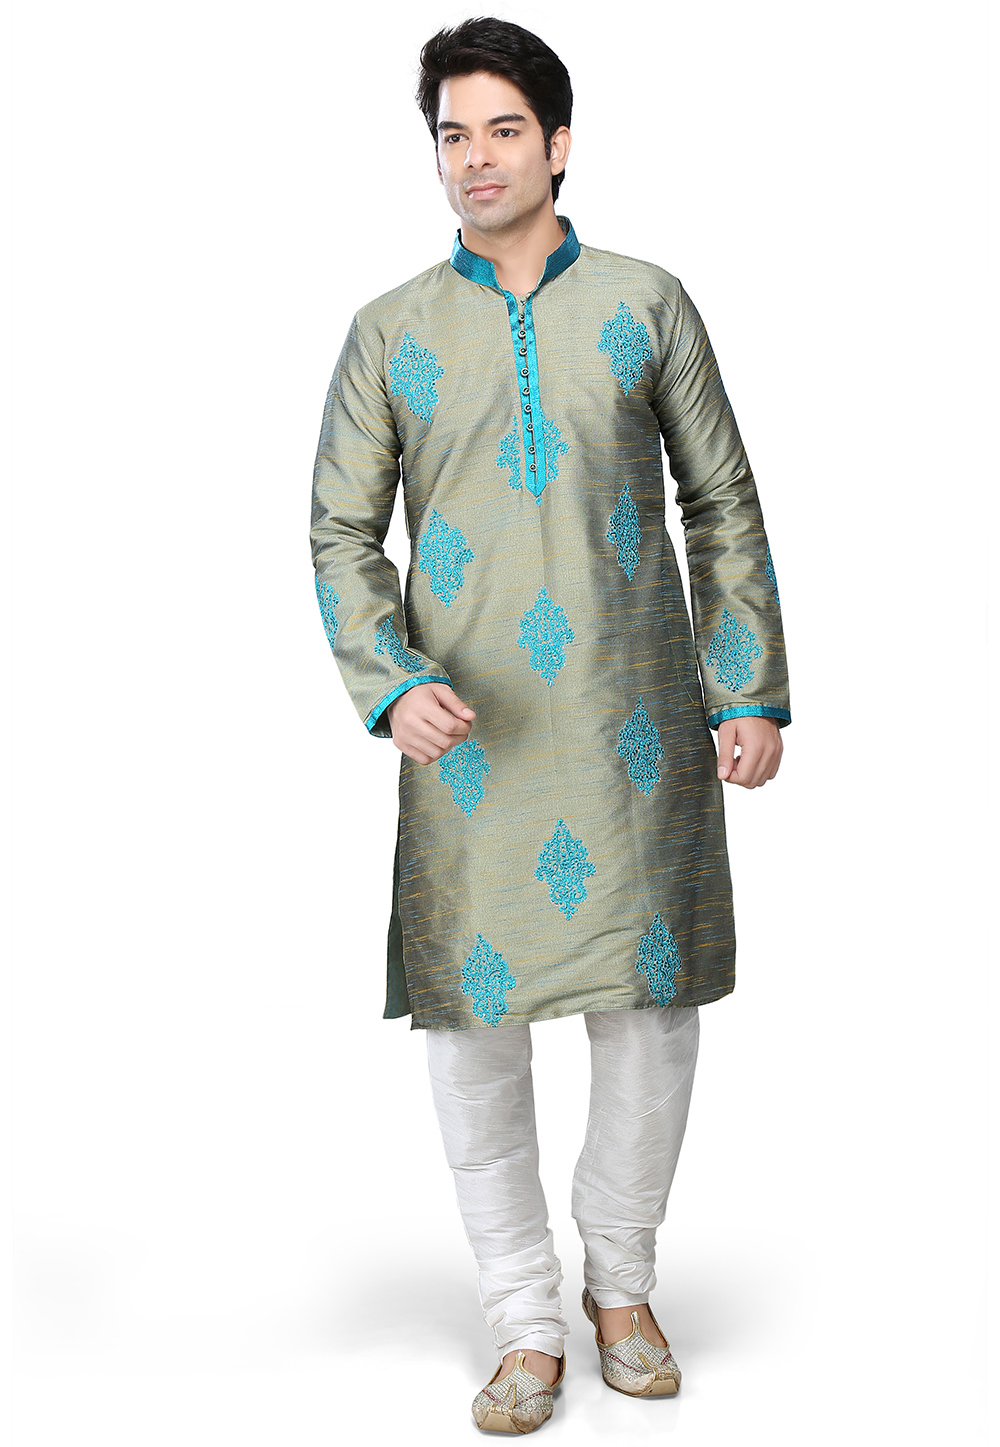 Regal Kurta Payjama. (Image: Utsavfashion.com)